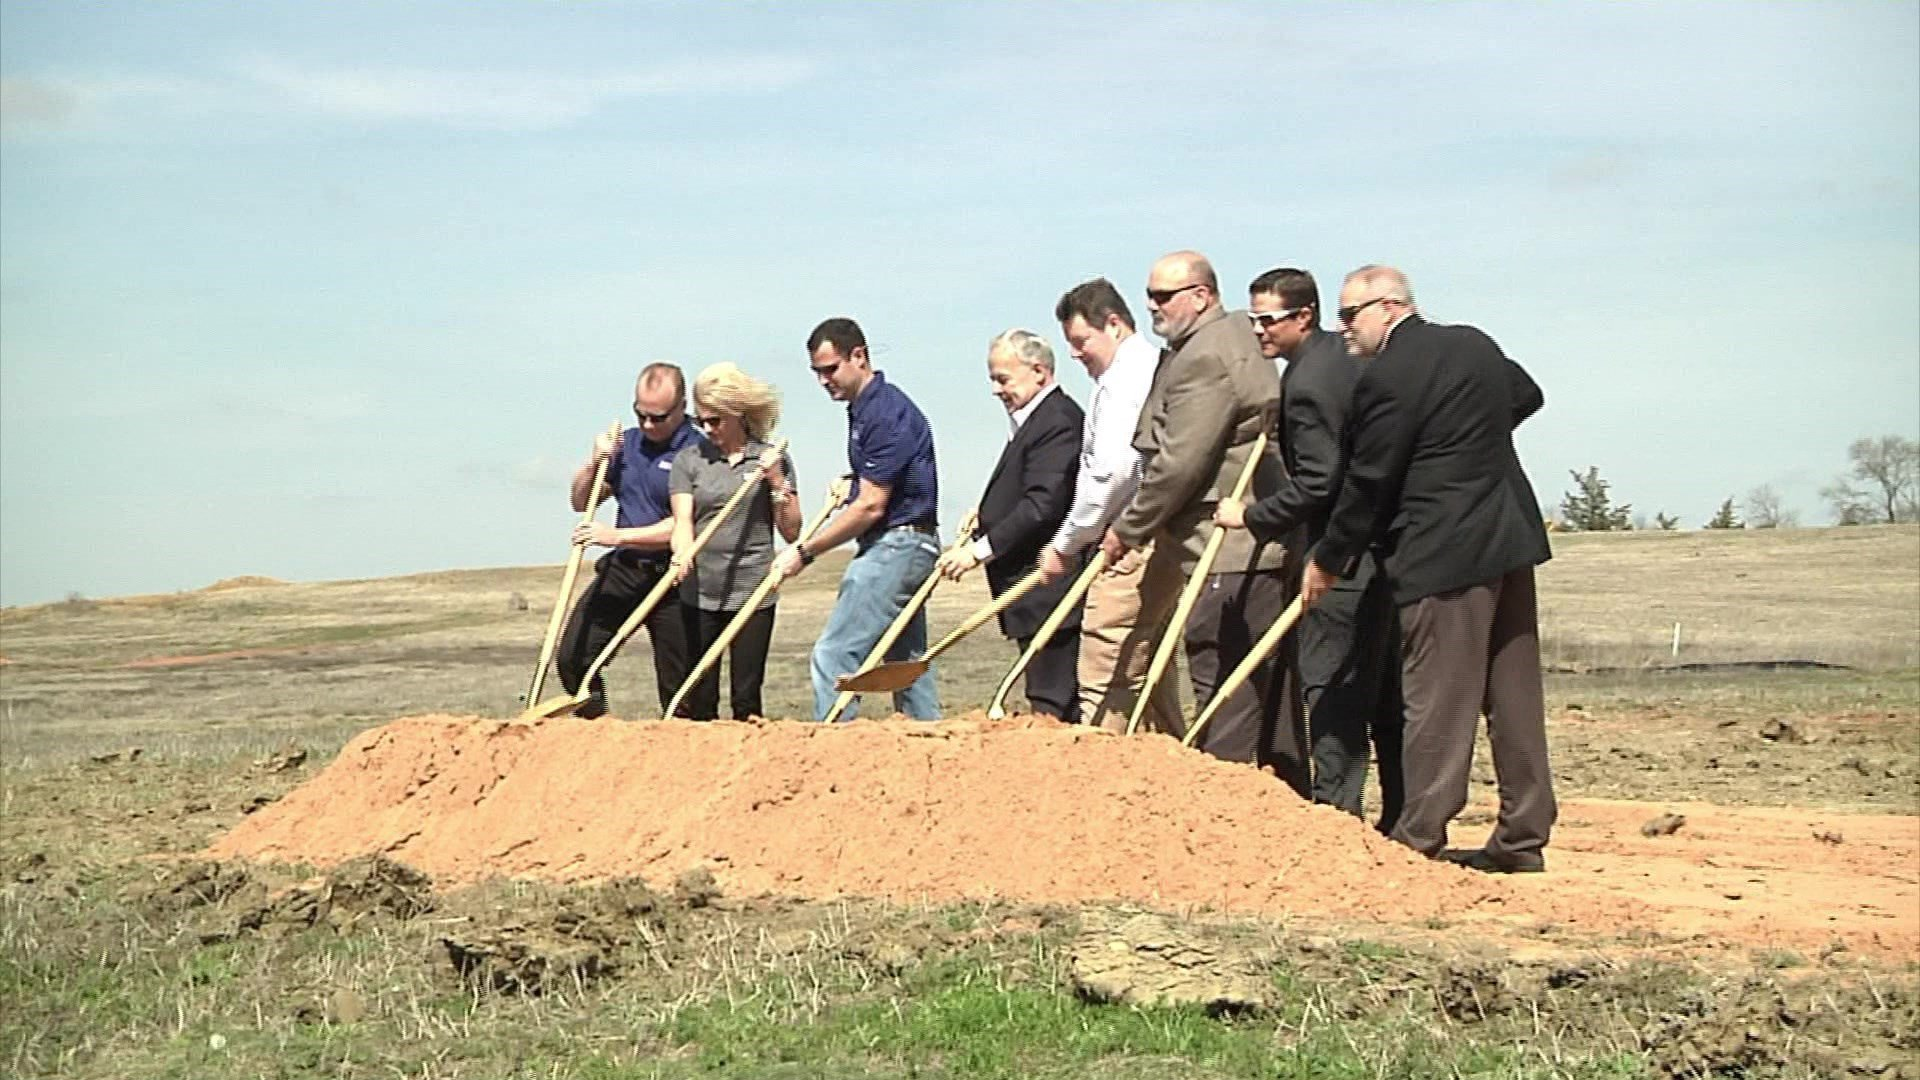 HeyDay will build an entertainment complex at this site in Denison. (KTEN)